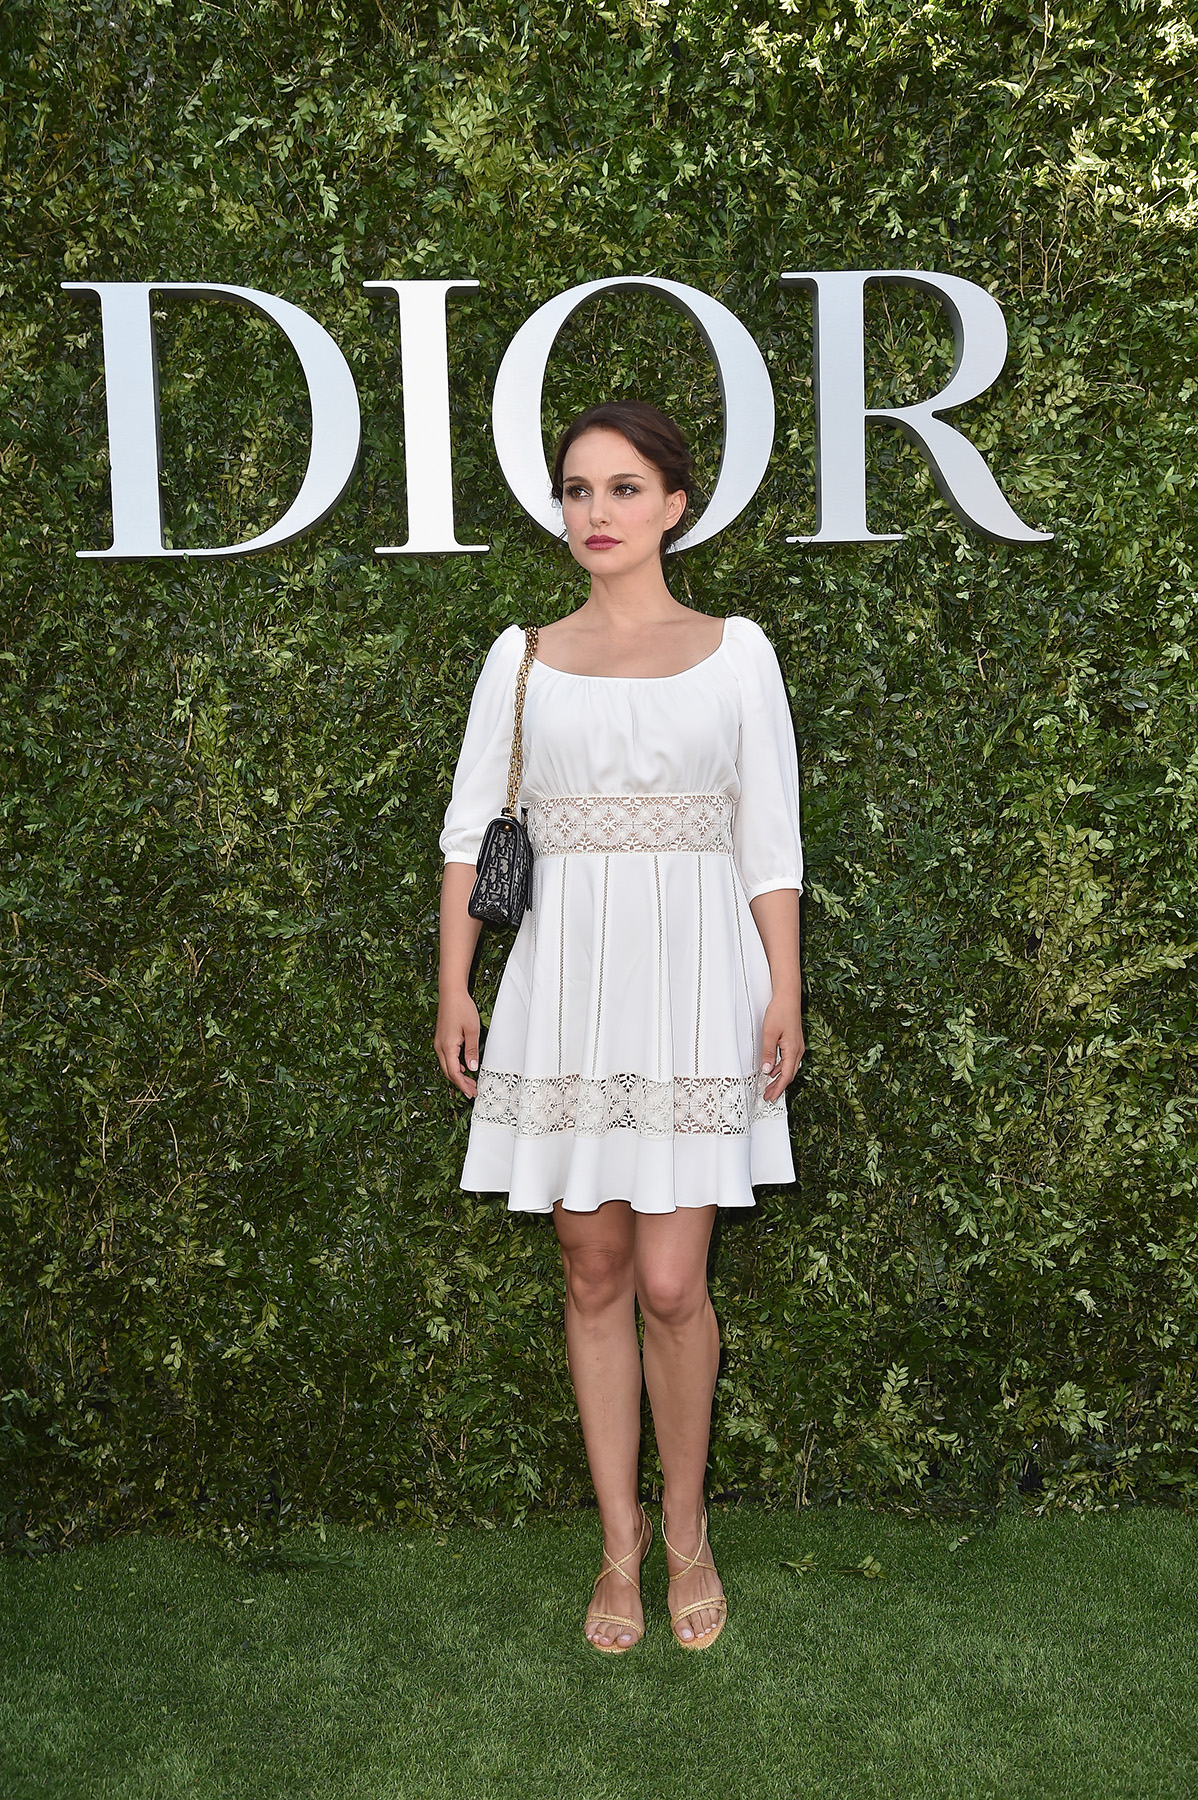 PARIS, FRANCE - JULY 03: Natalie Portman attends 'Christian Dior, couturier du reve' Exhibition Launch celebrating 70 years of creation at Musee Des Arts Decoratifs on July 3, 2017 in Paris, France. (Photo by Jacopo Raule/Getty Images for Christian Dior) *** Local Caption *** Natalie Portman